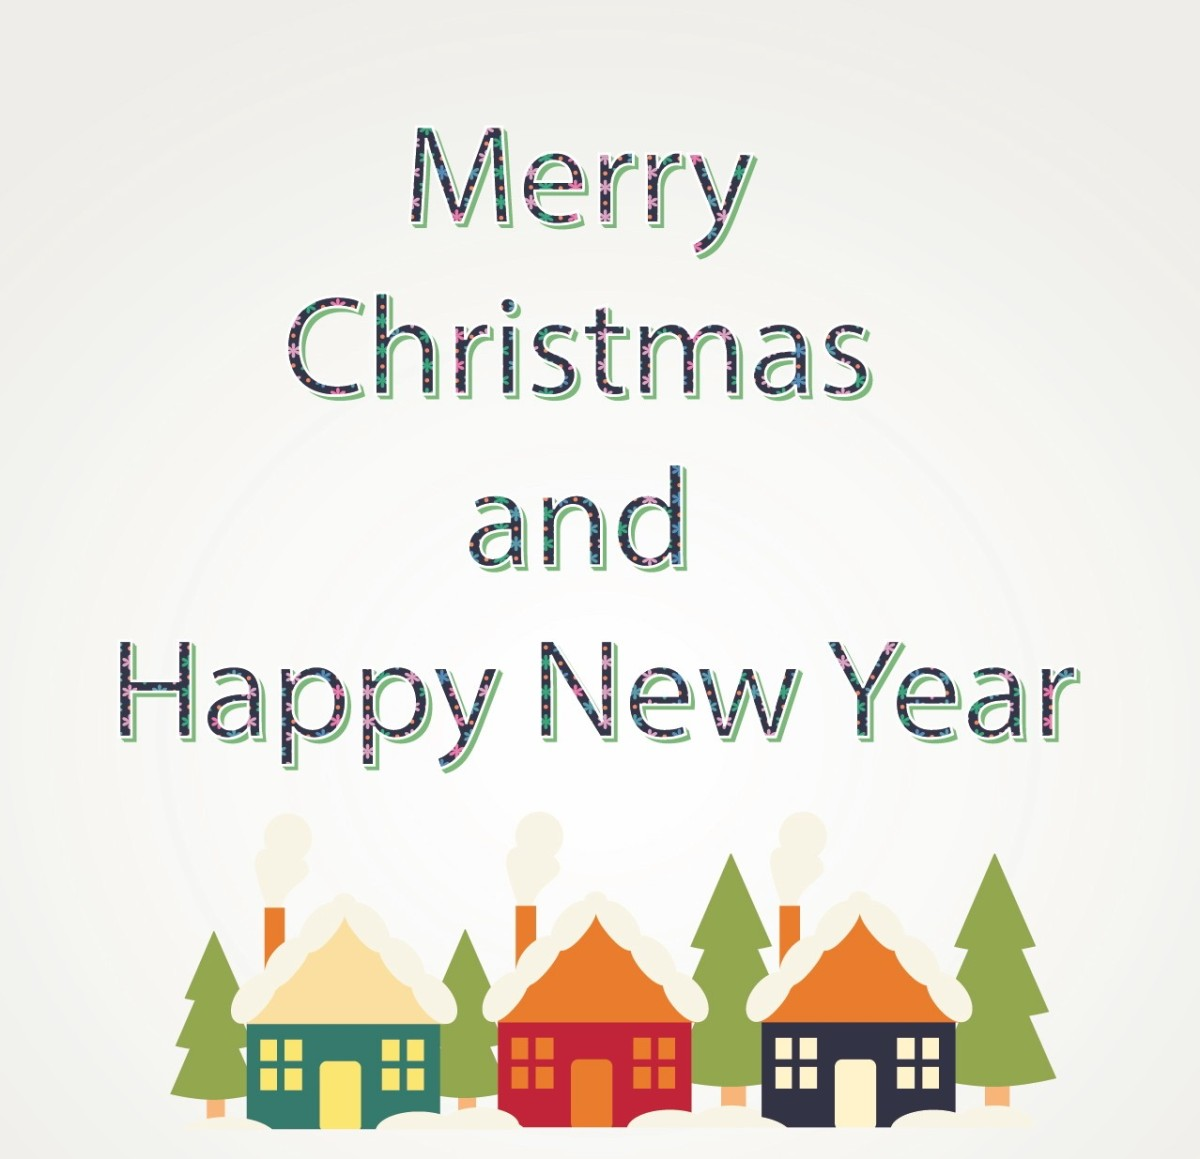 happy-new-year-Merry-Christmas -Border-image78607593.jpg